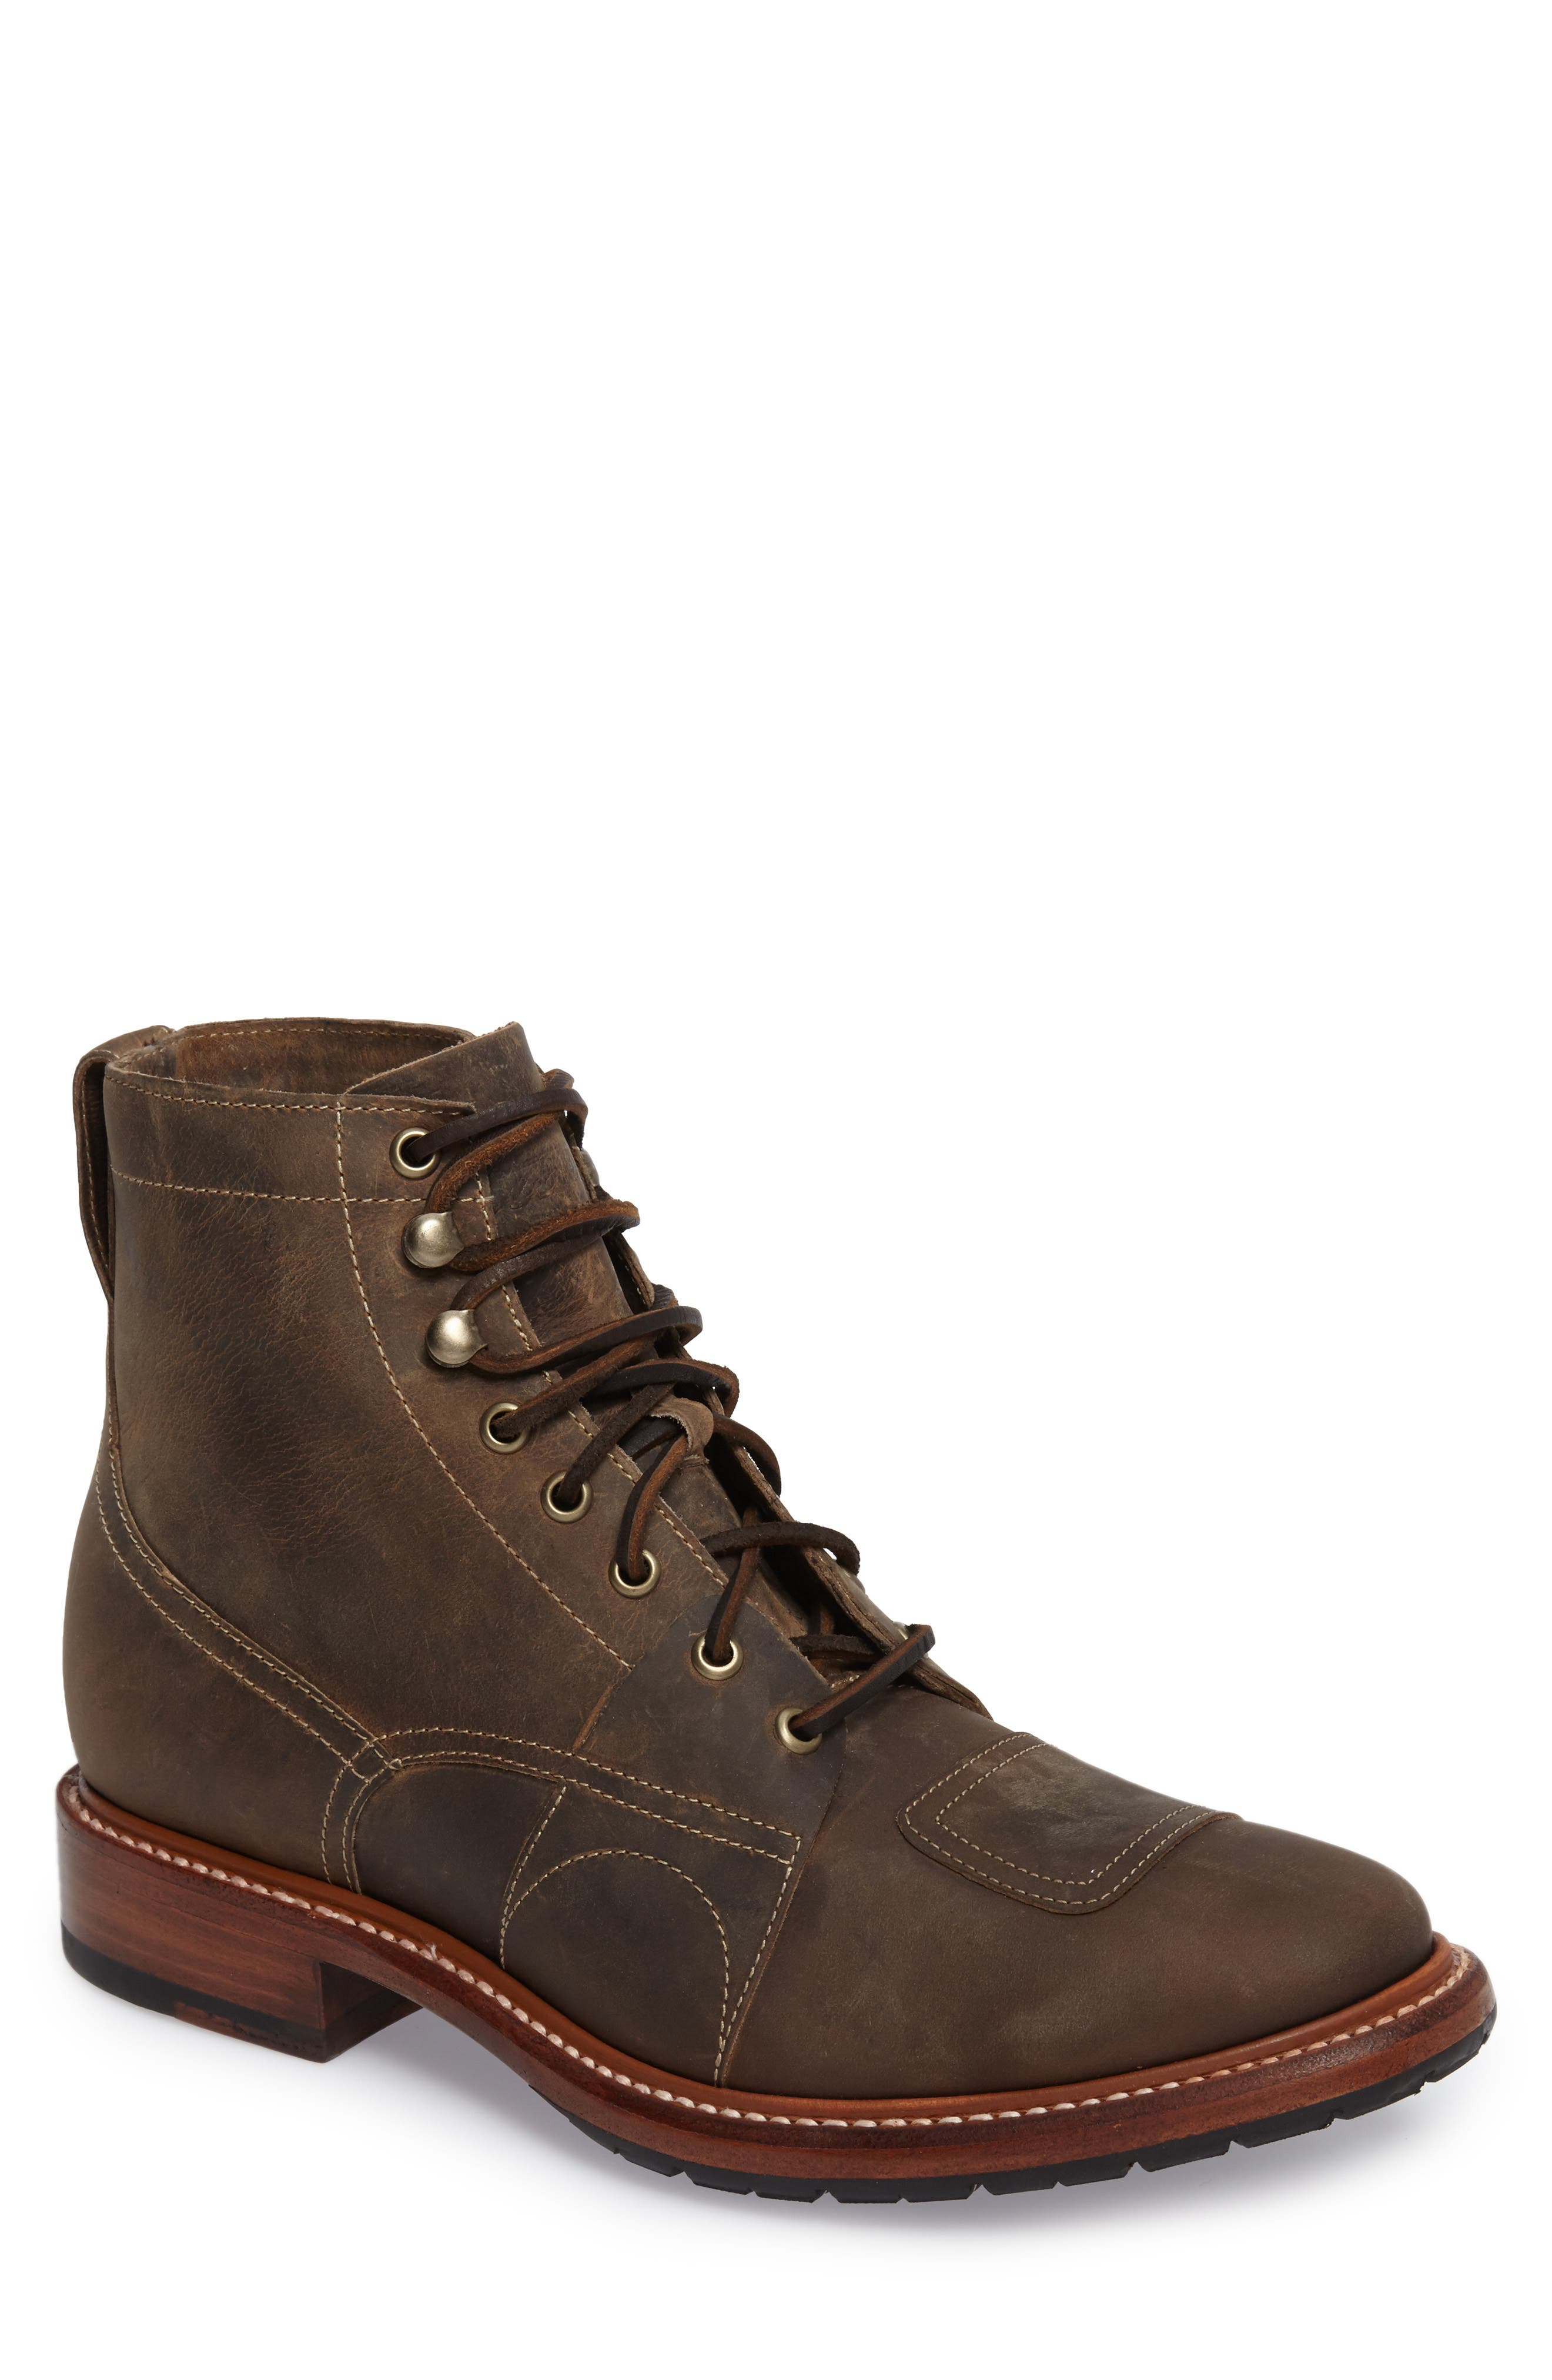 Cypress Plain Toe Boot,                             Main thumbnail 1, color,                             Brown Leather